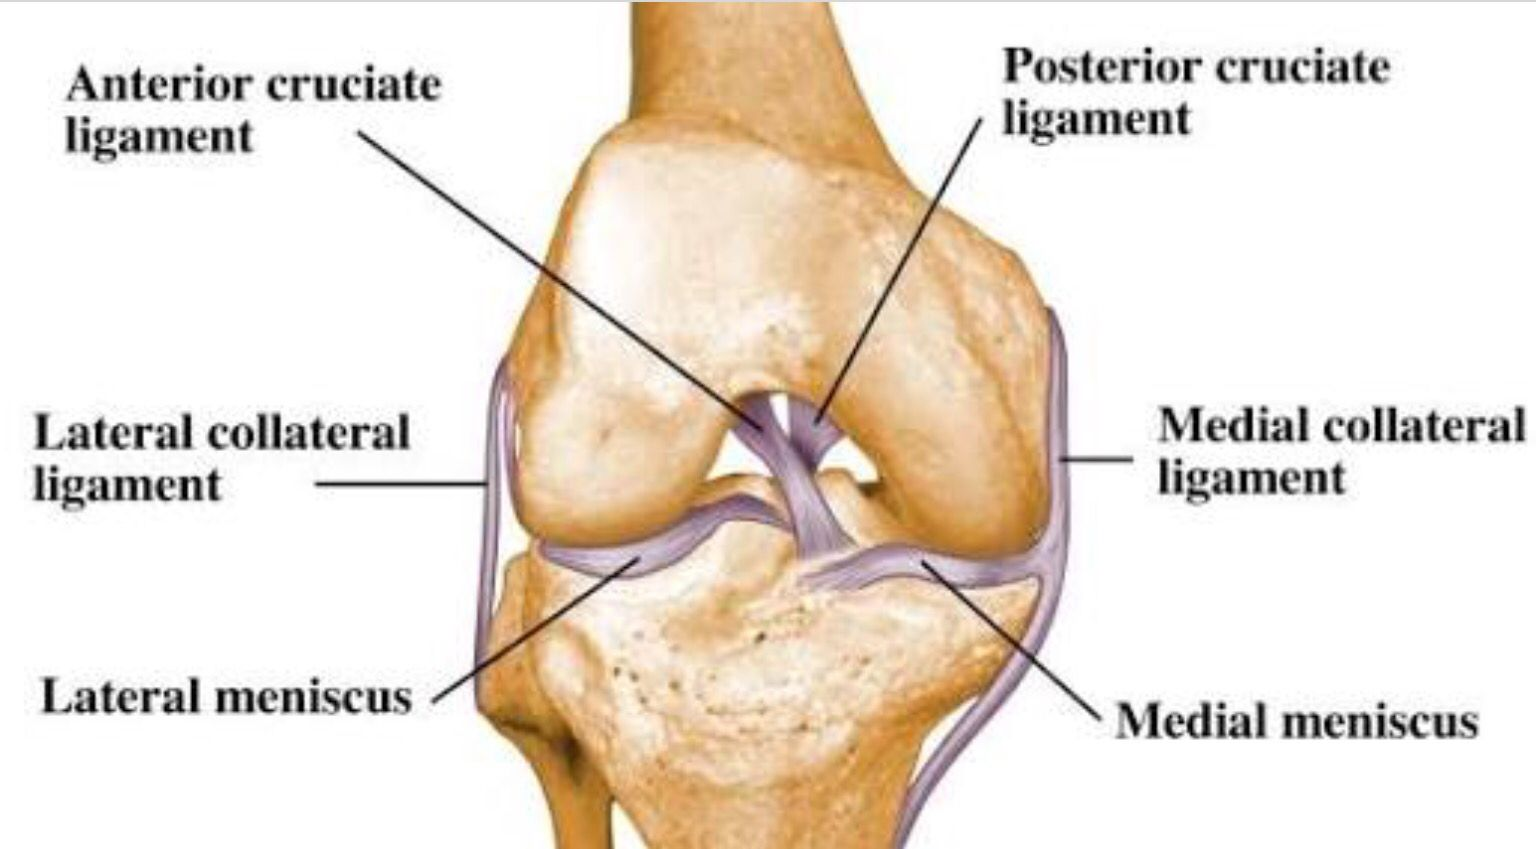 The Lateral collateral ligament (LCL) is on the outside of the knee ...